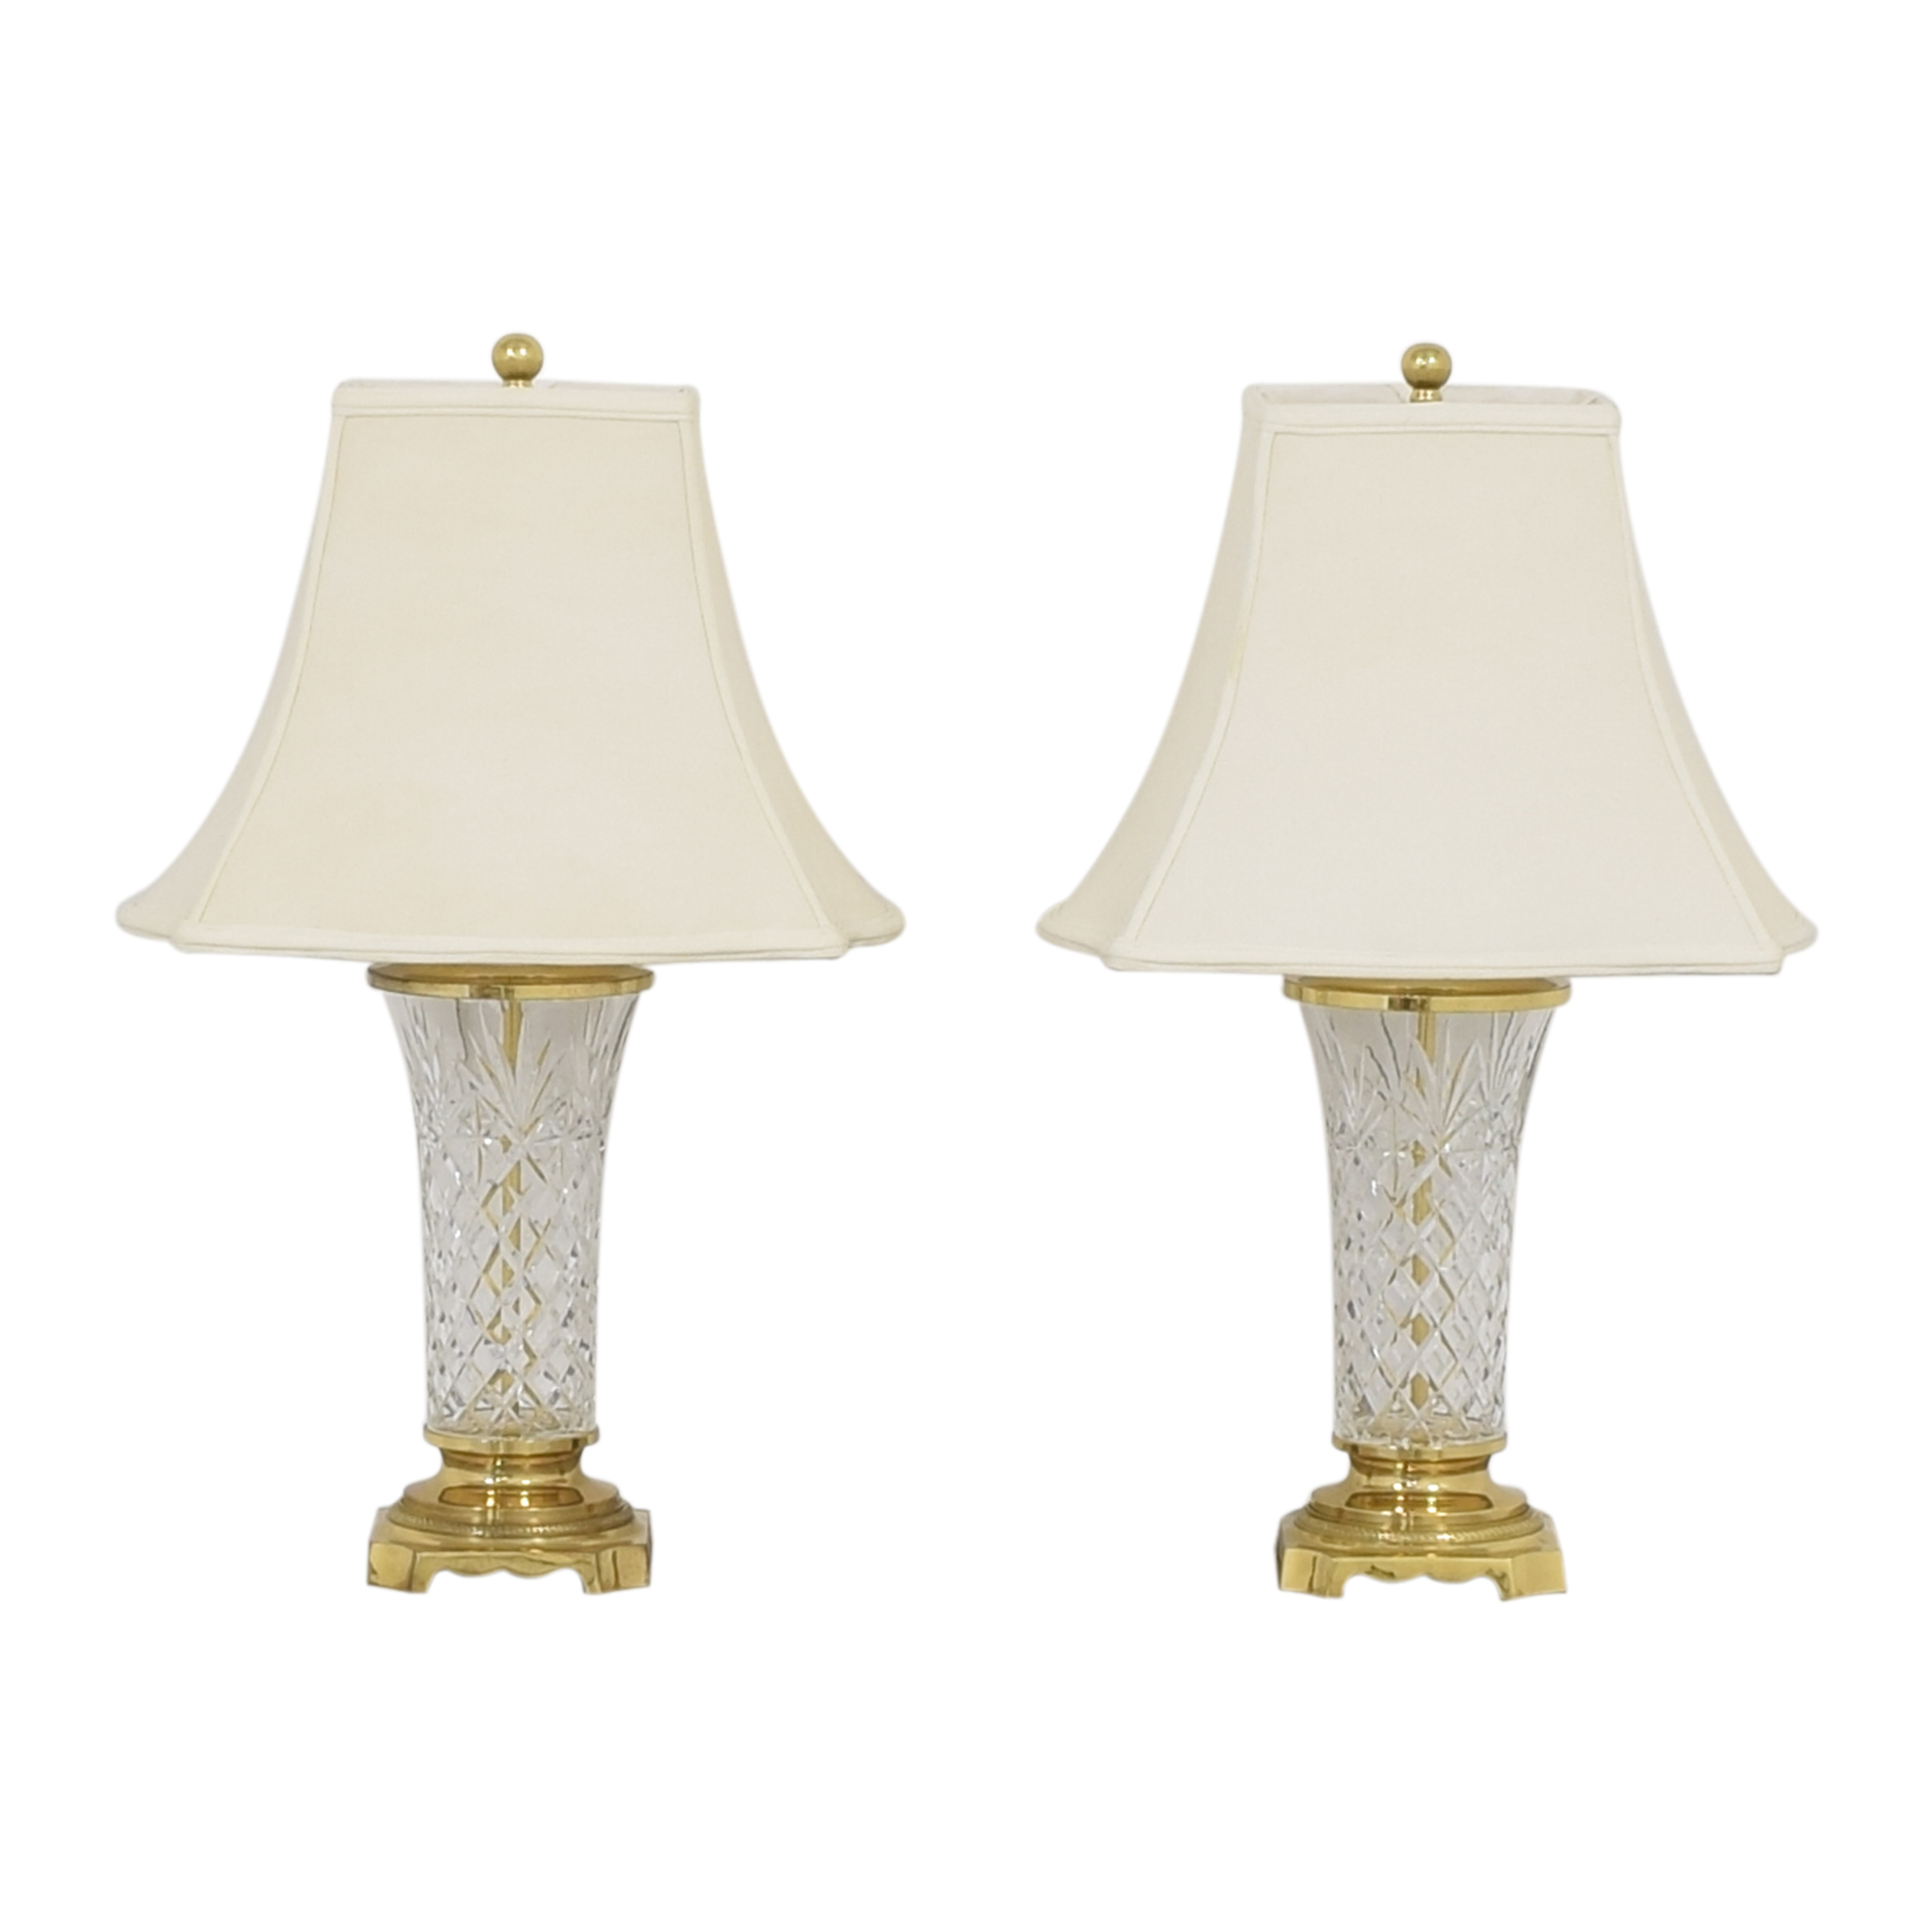 Wildwood Wildwood Table Lamps